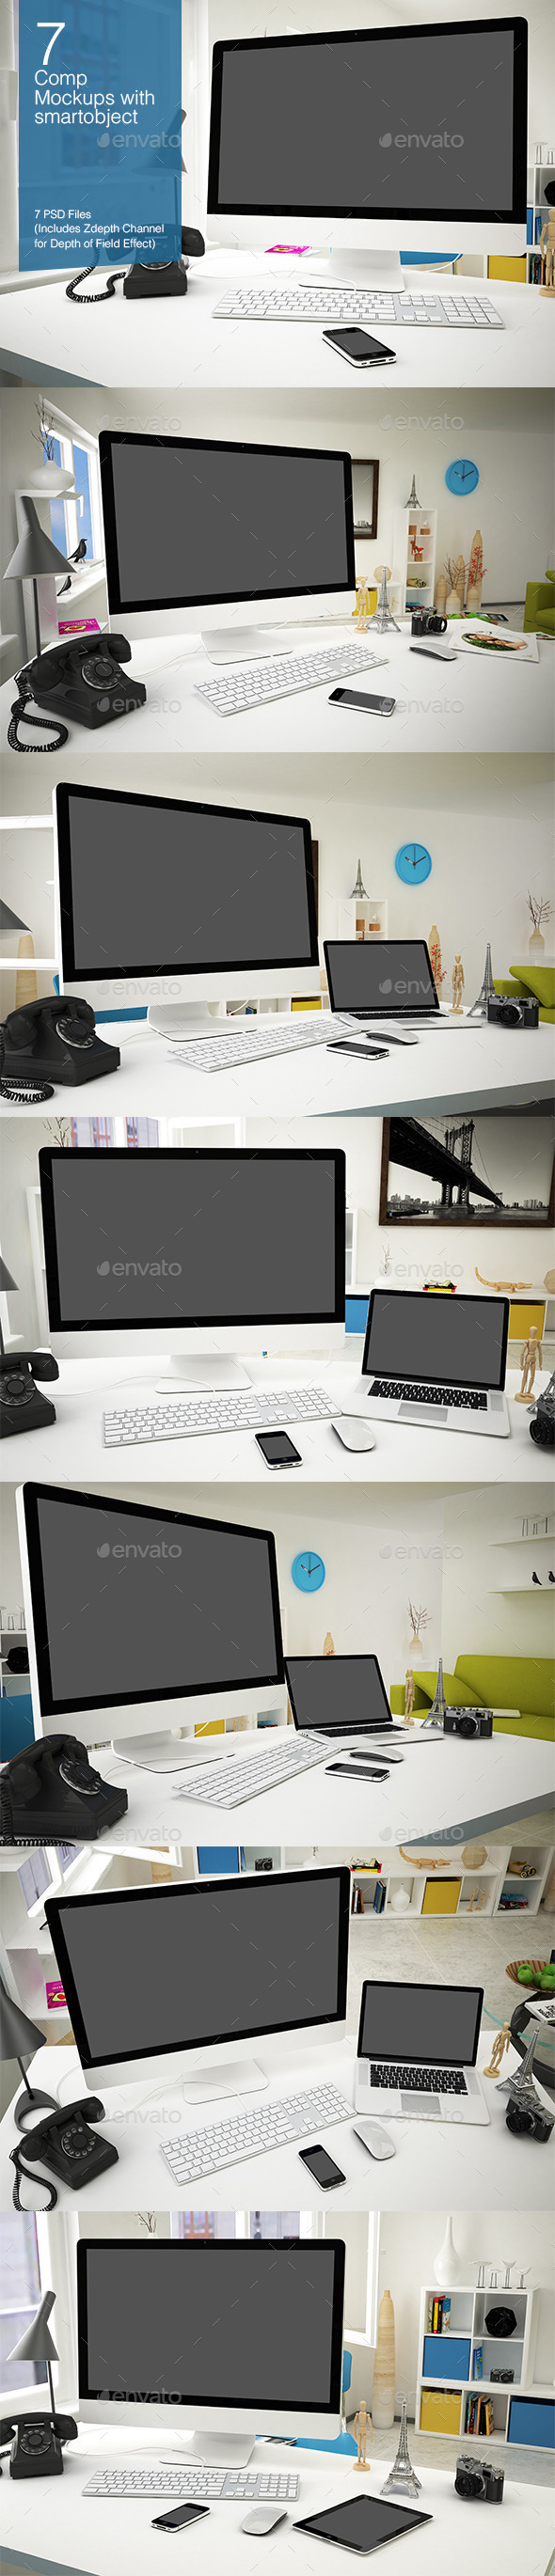 GraphicRiver Computer Mockup 7 Poses 8927372